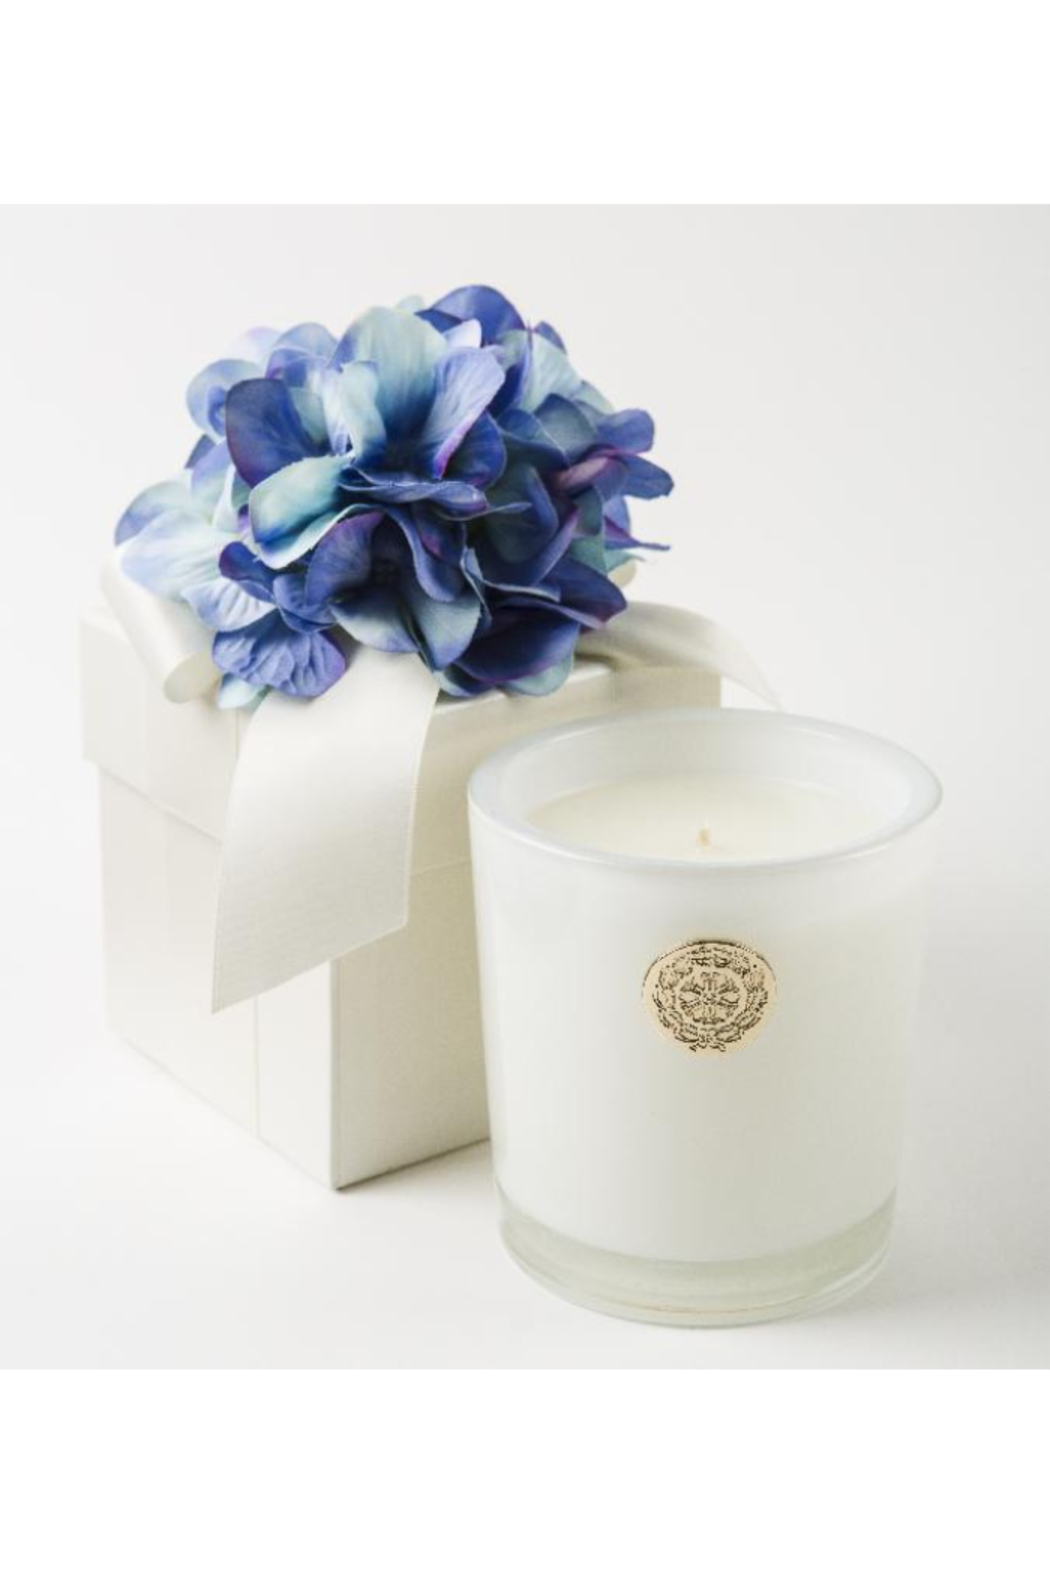 The Birds Nest 14OZ-BLUE HYDRANGEA WITH GIFT BOX - Main Image